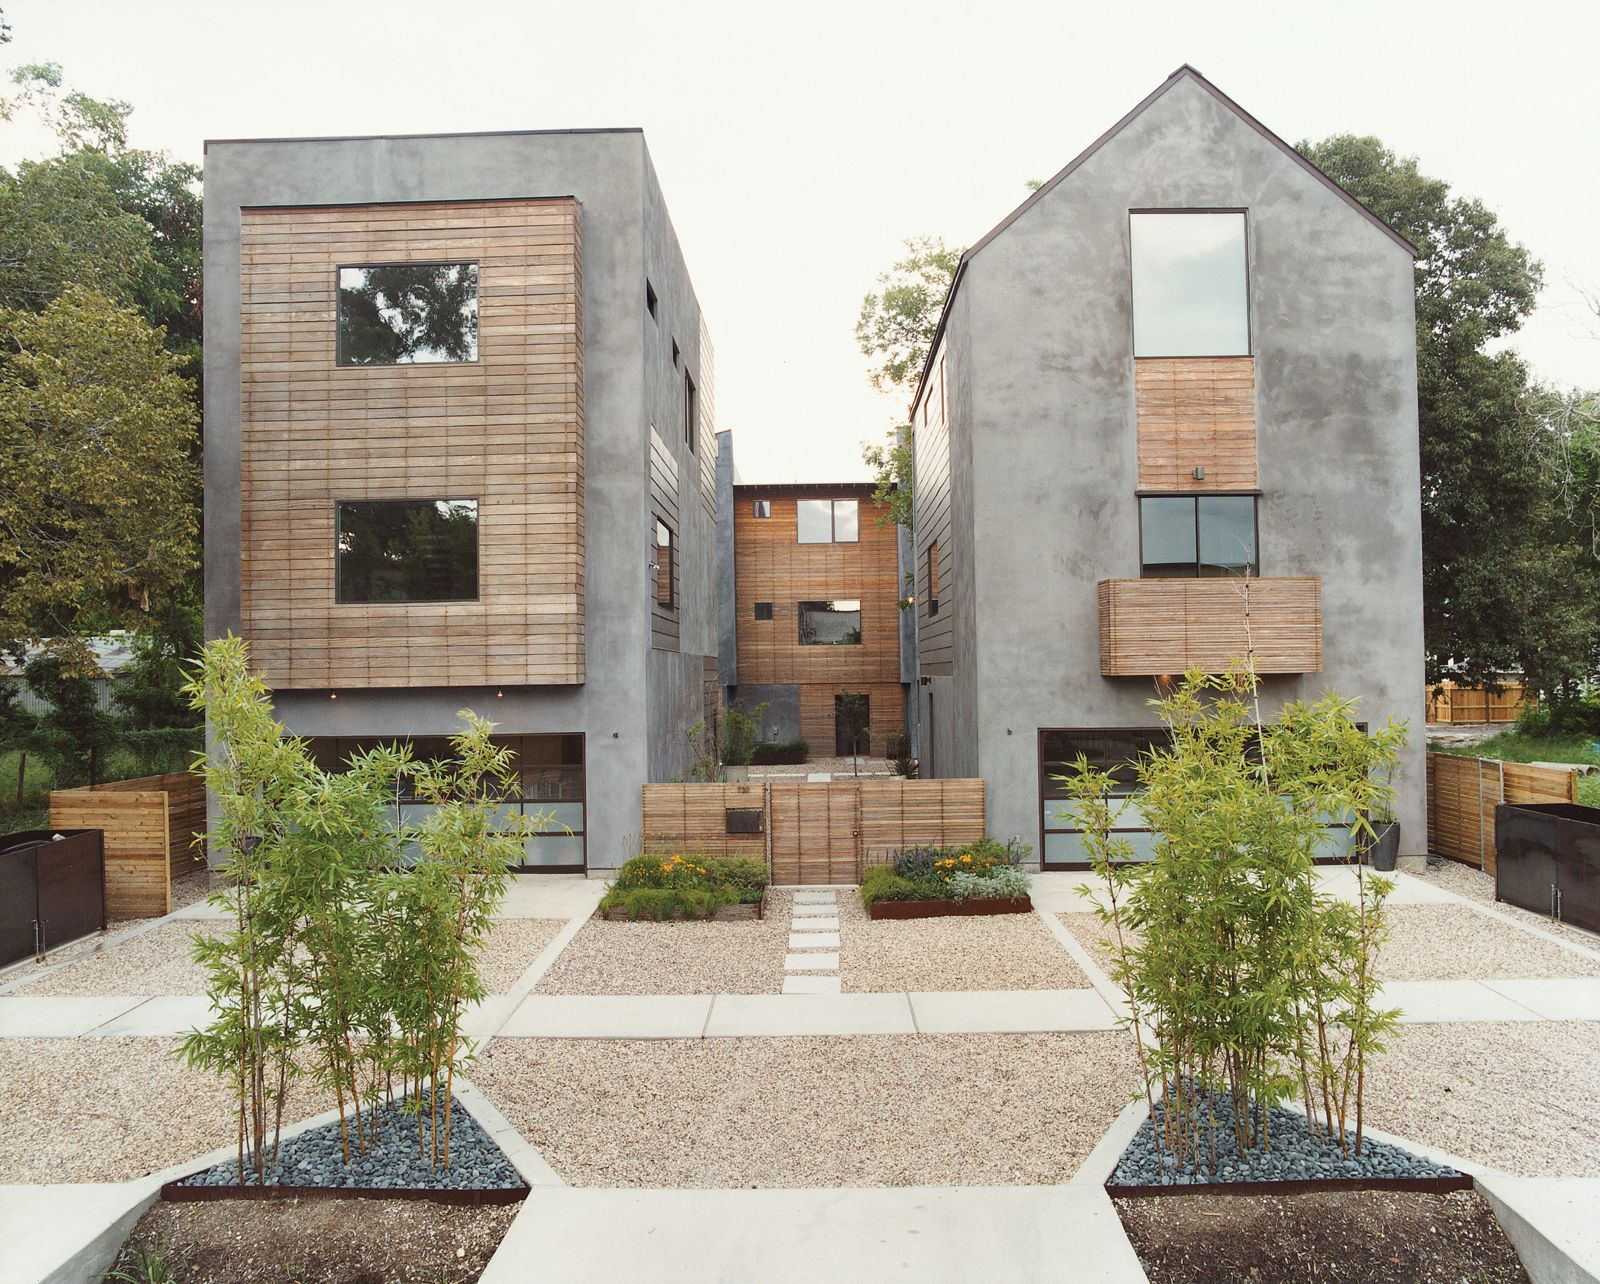 Noteworthy Sustainable Homes By Jami Smith Jack Thompson Concrete Structure And Exposed Wood